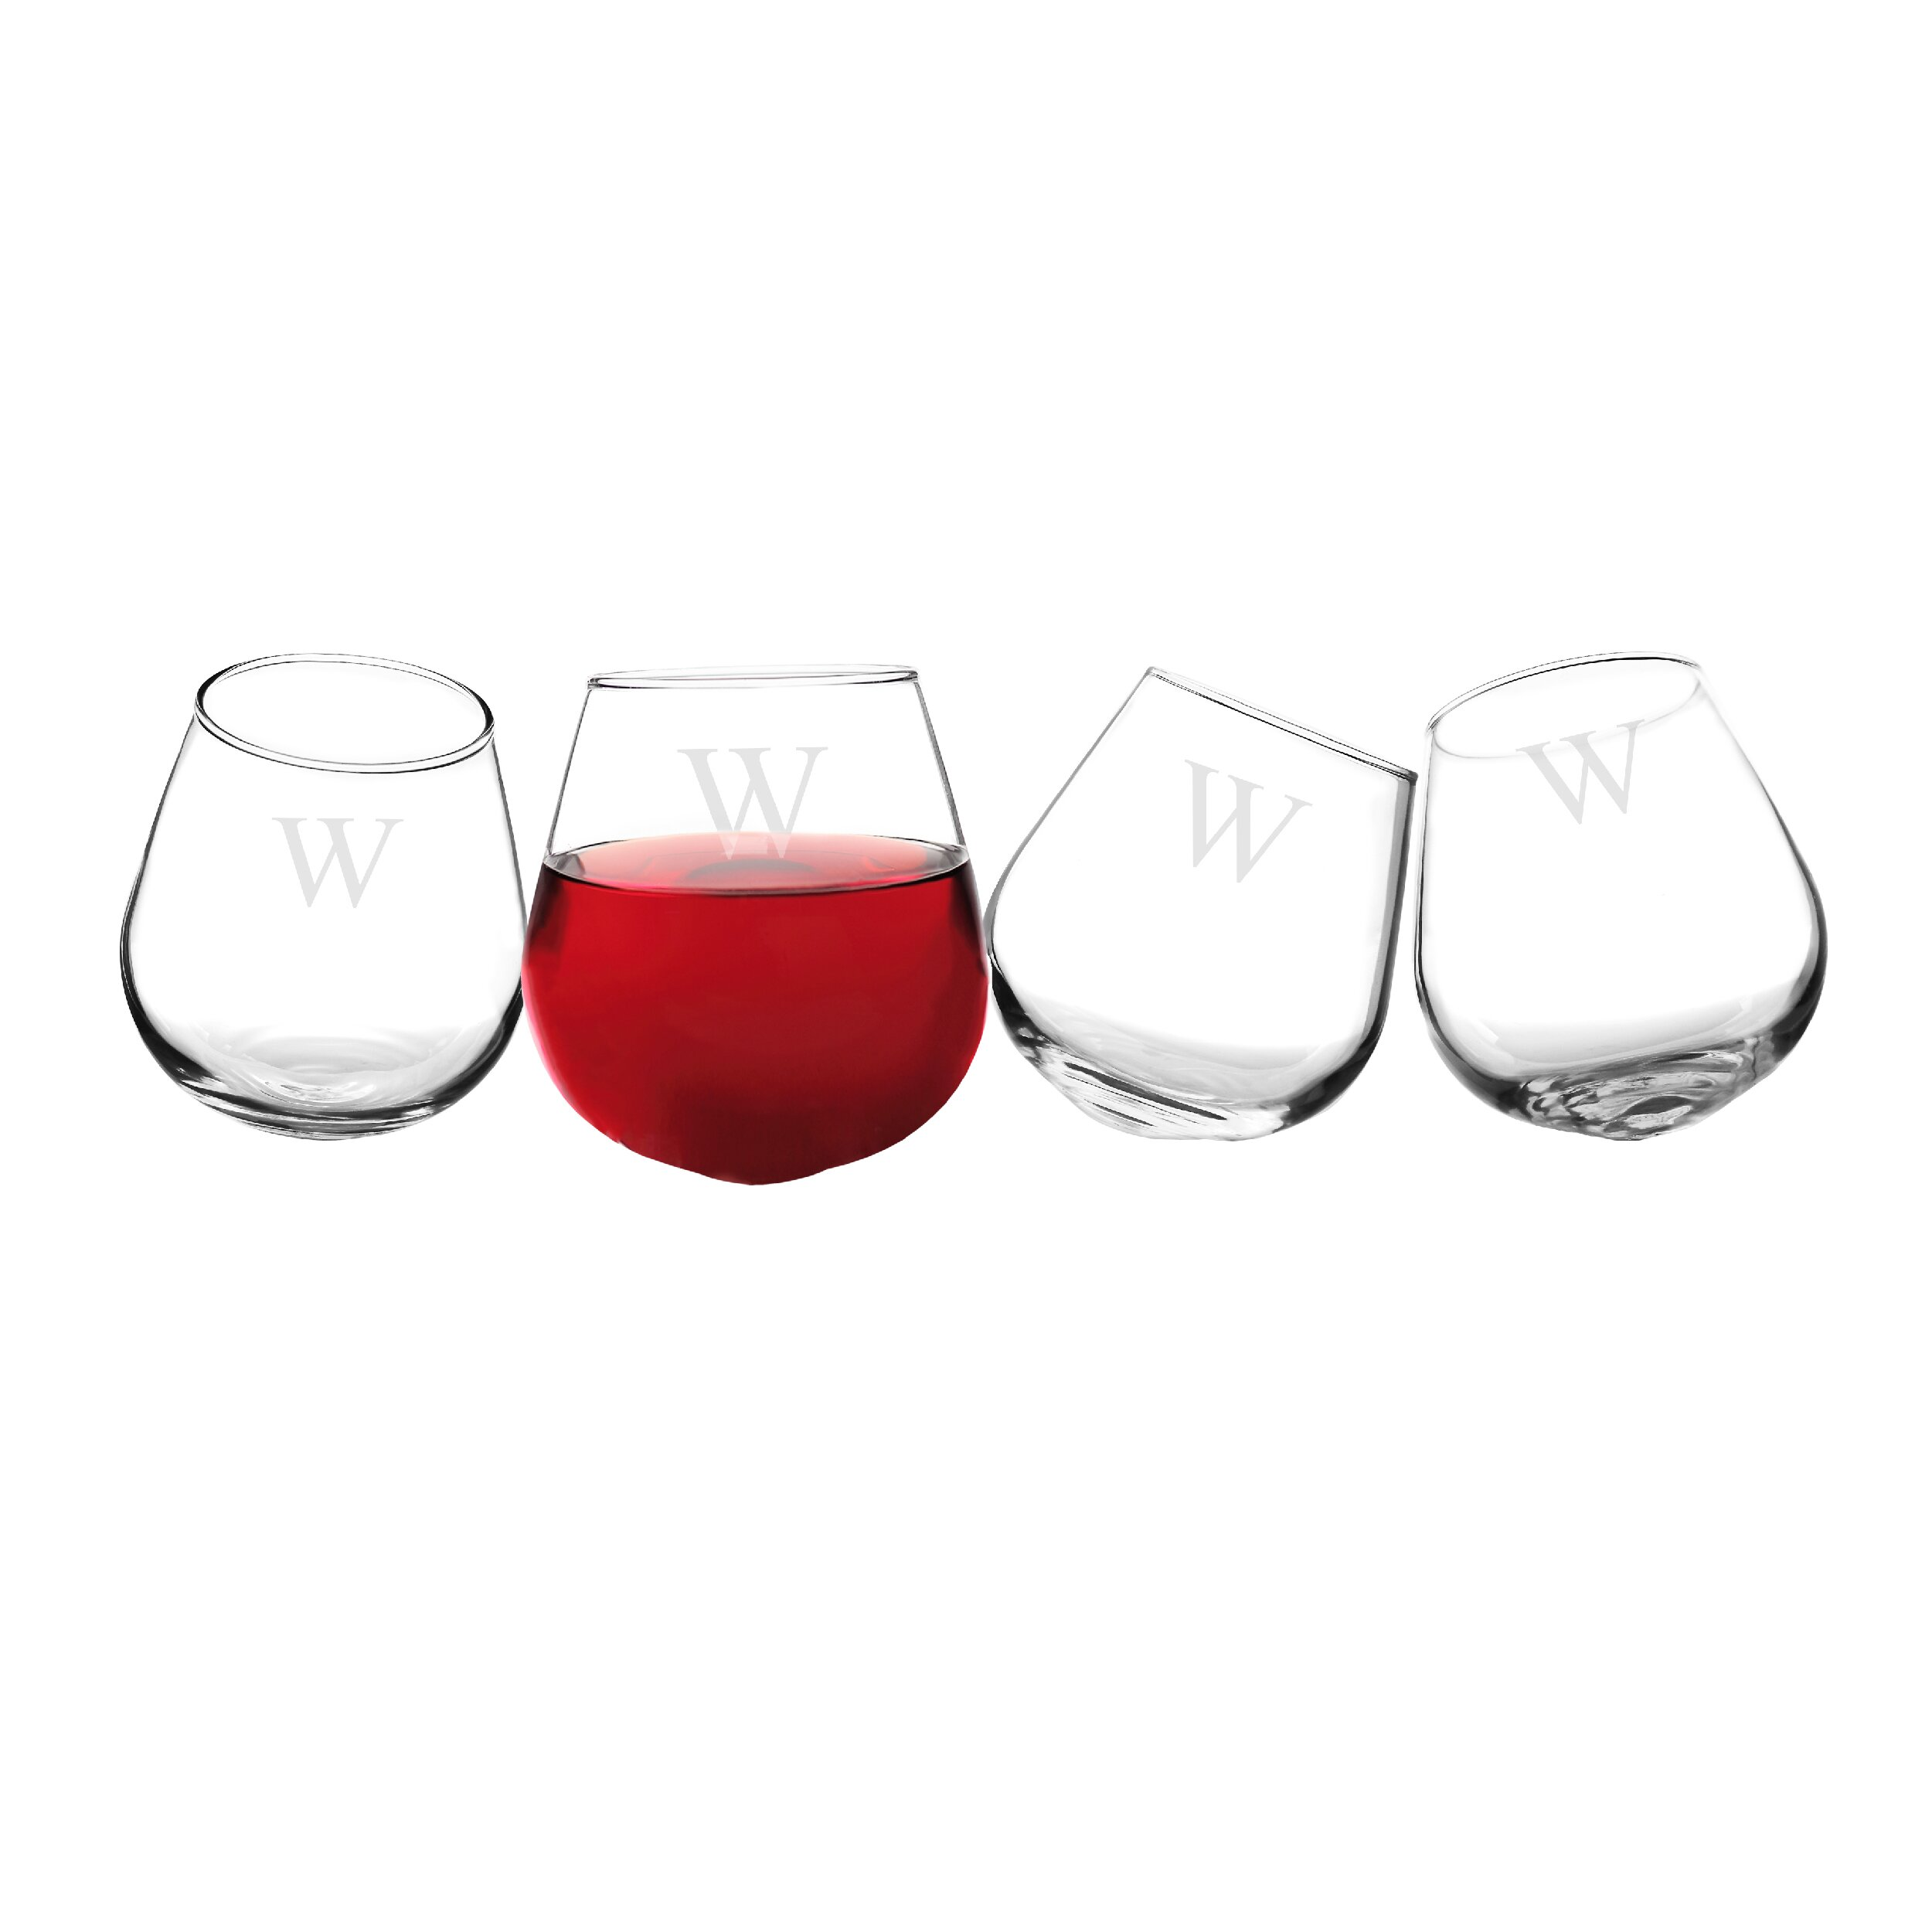 Cathys Concepts Personalized Wine Tumbler Glass Reviews